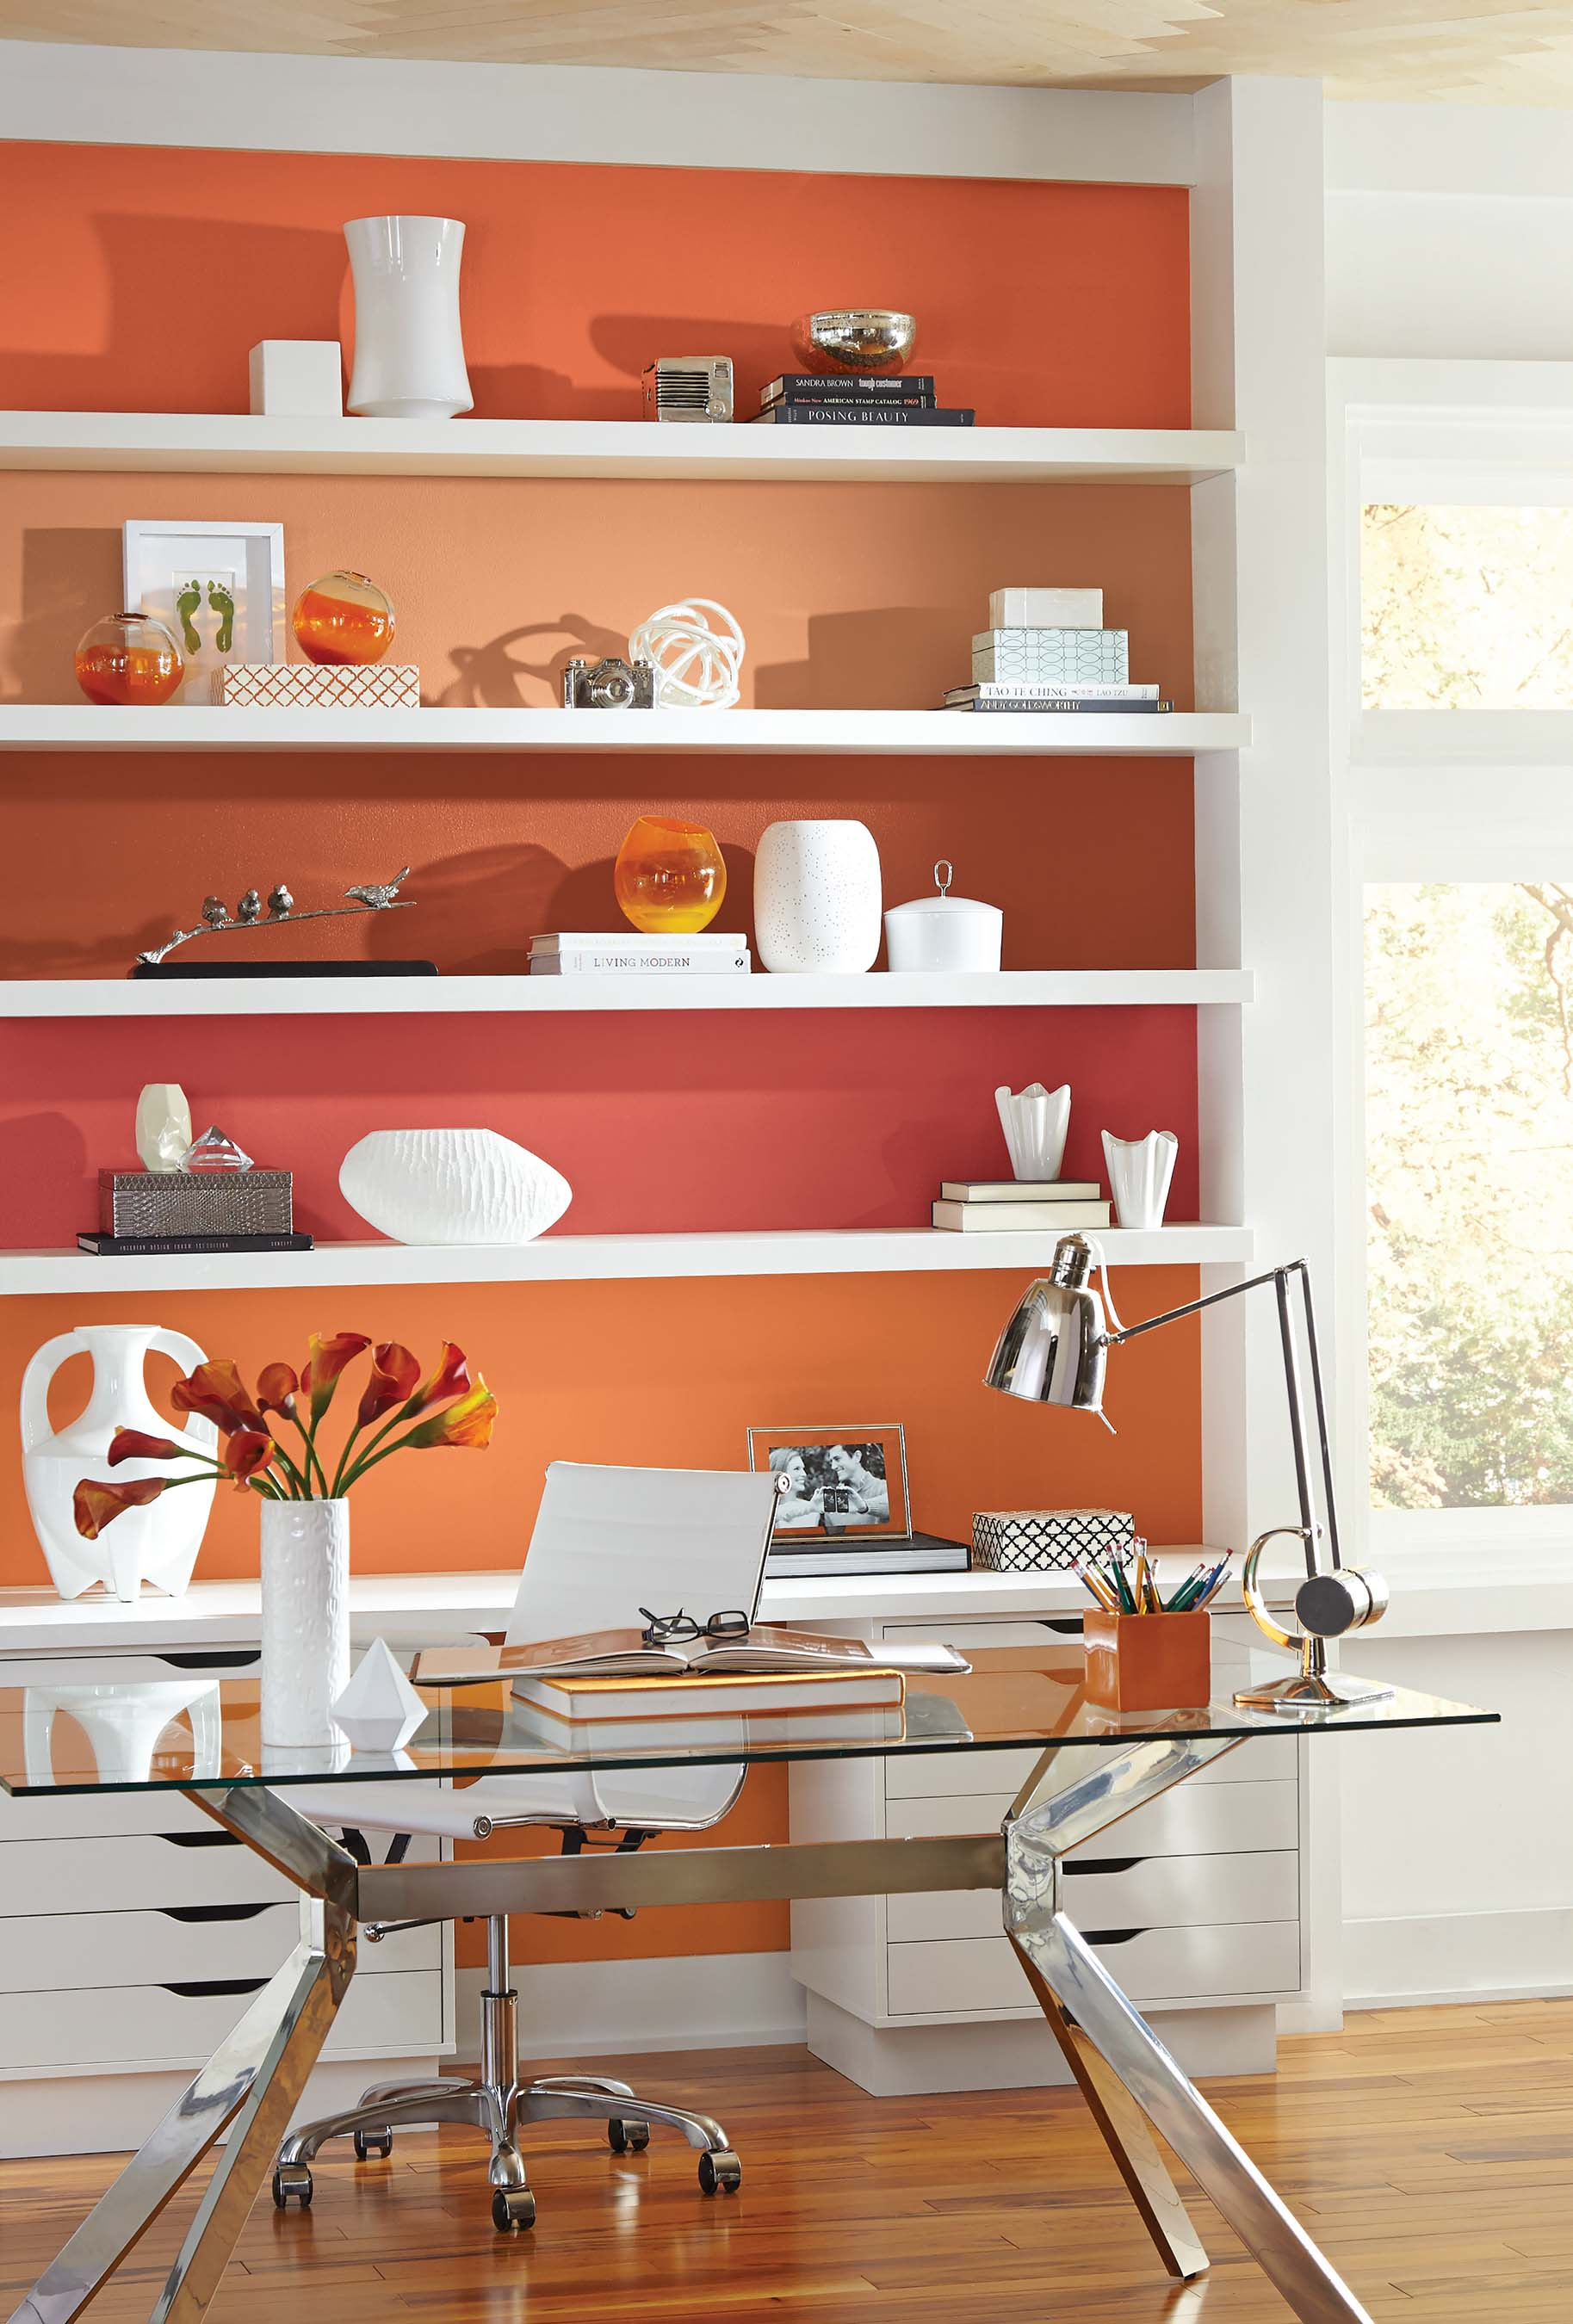 Sherwin-Williams is sharing tips and how-to's to create bold impressions with paint.